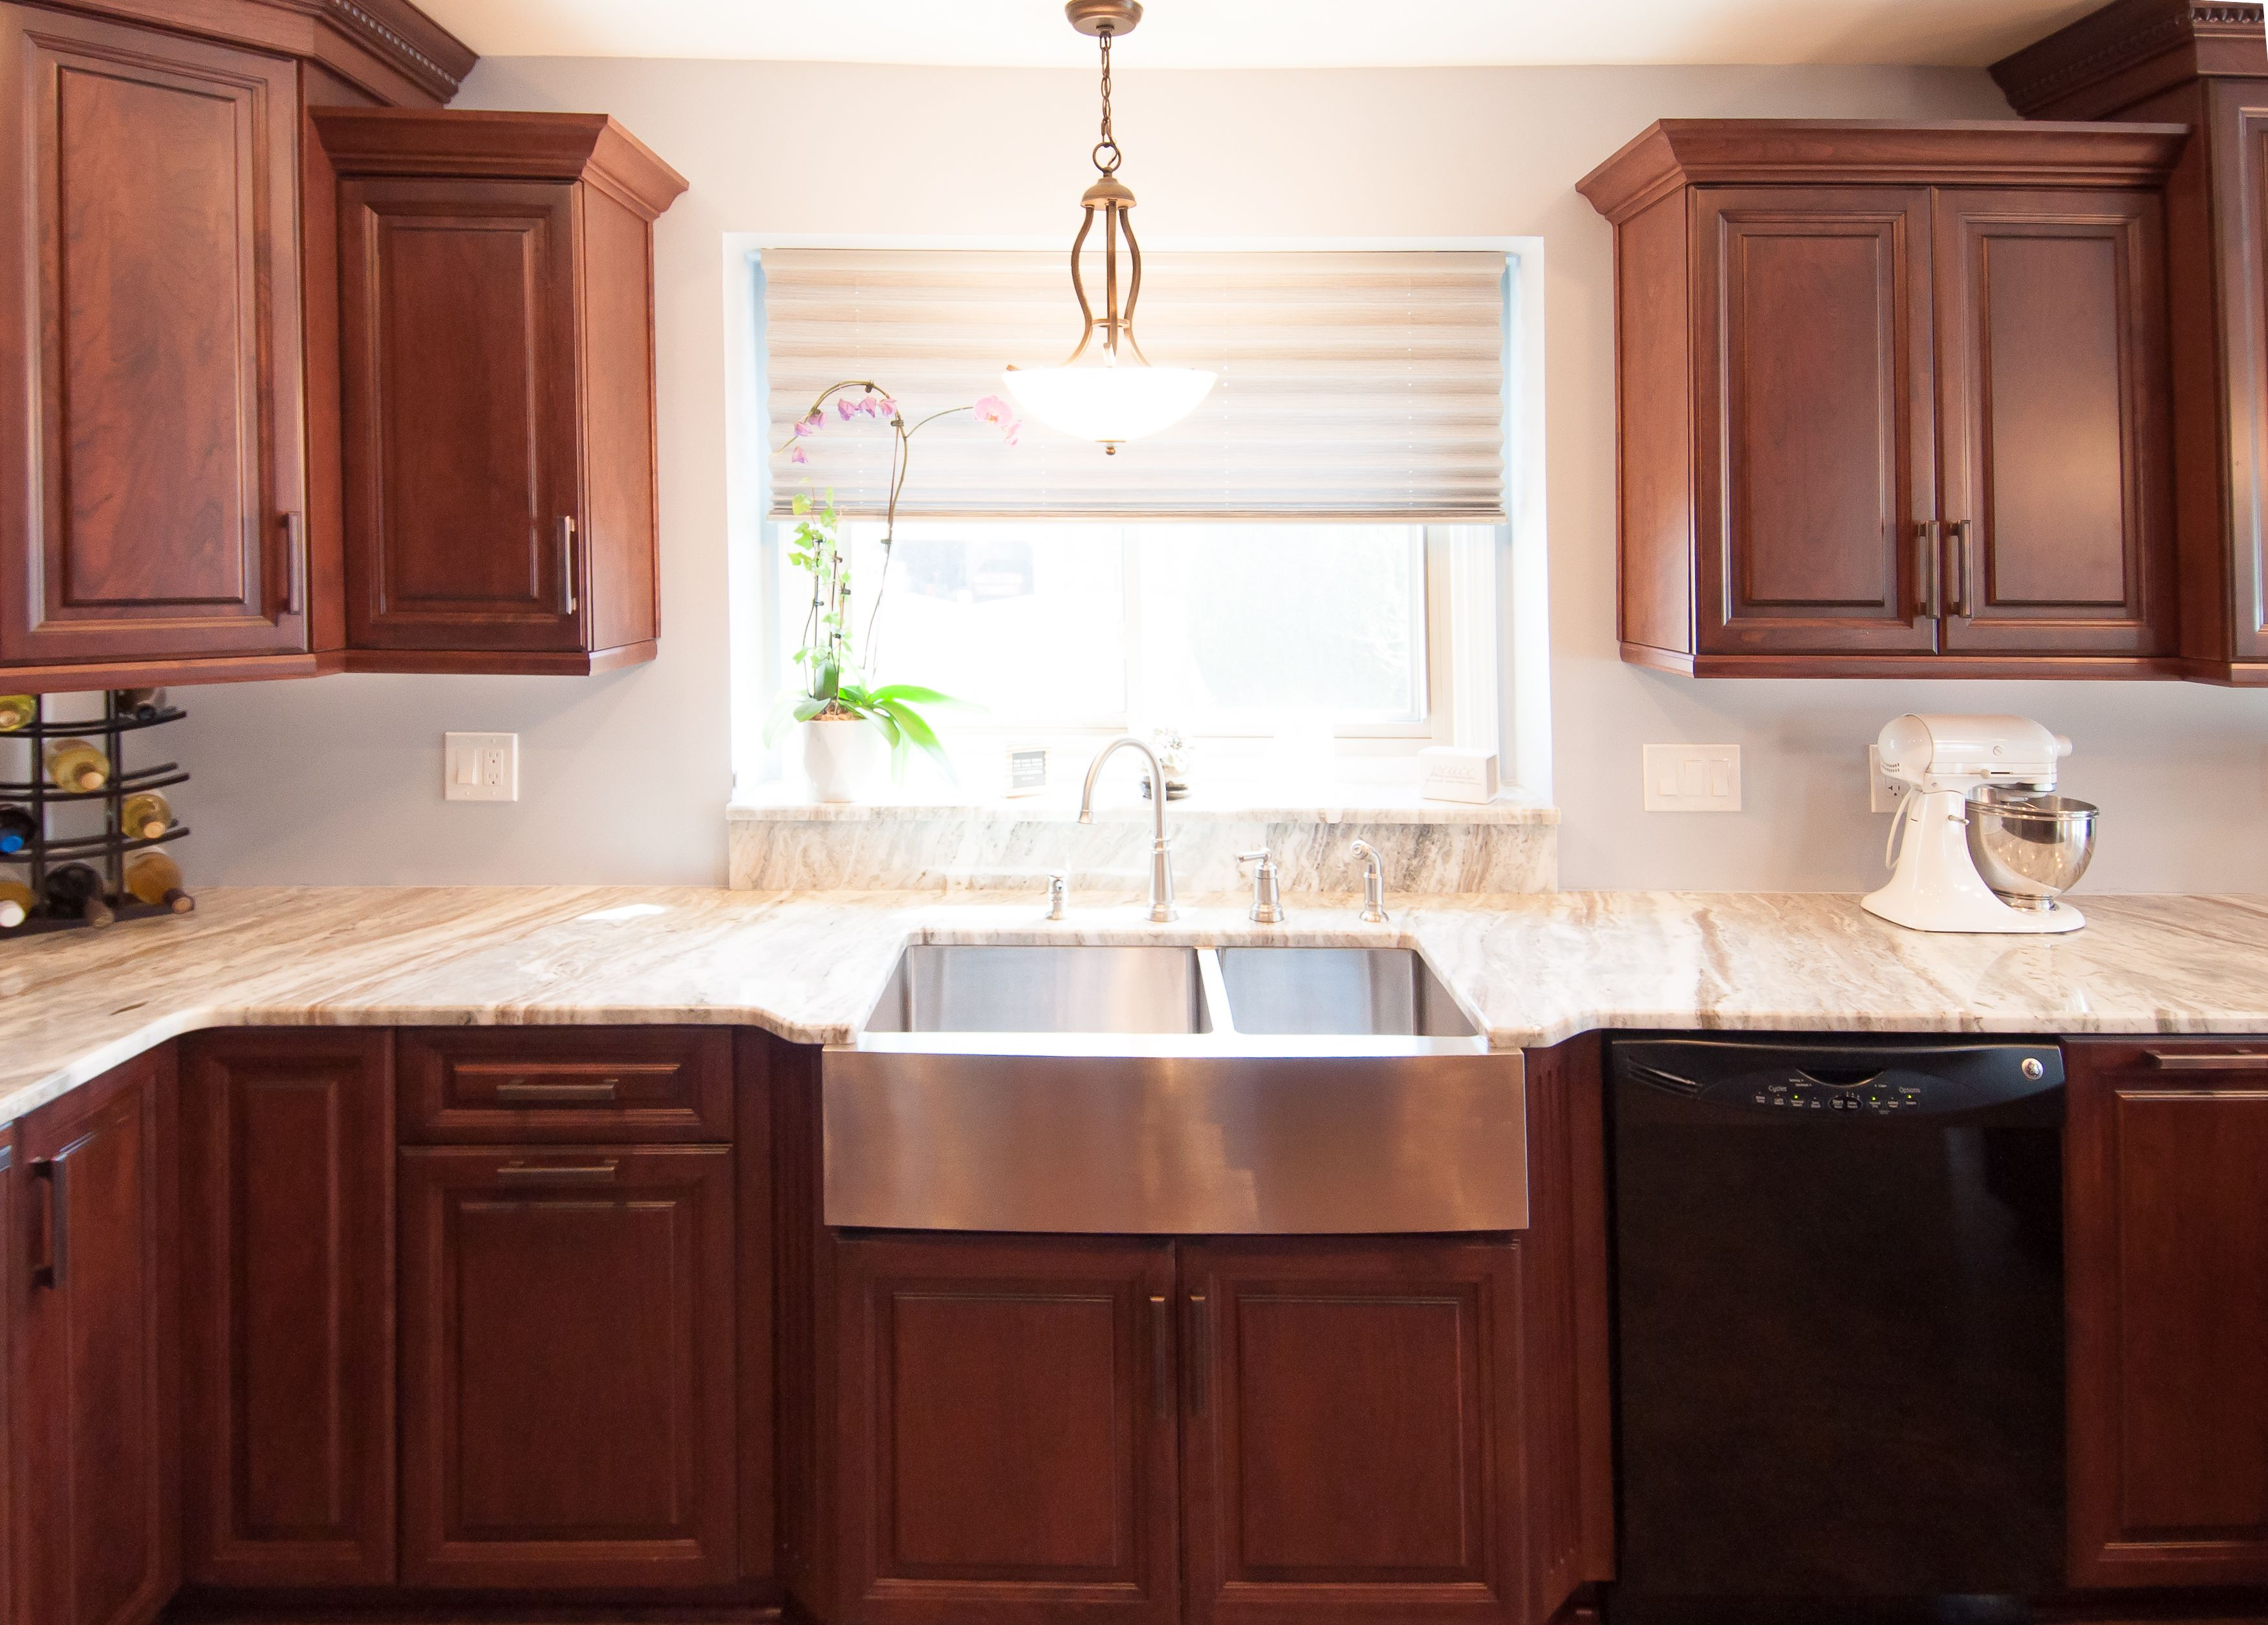 Love The Stainless Steel Sink In This Kitchen Renovated And